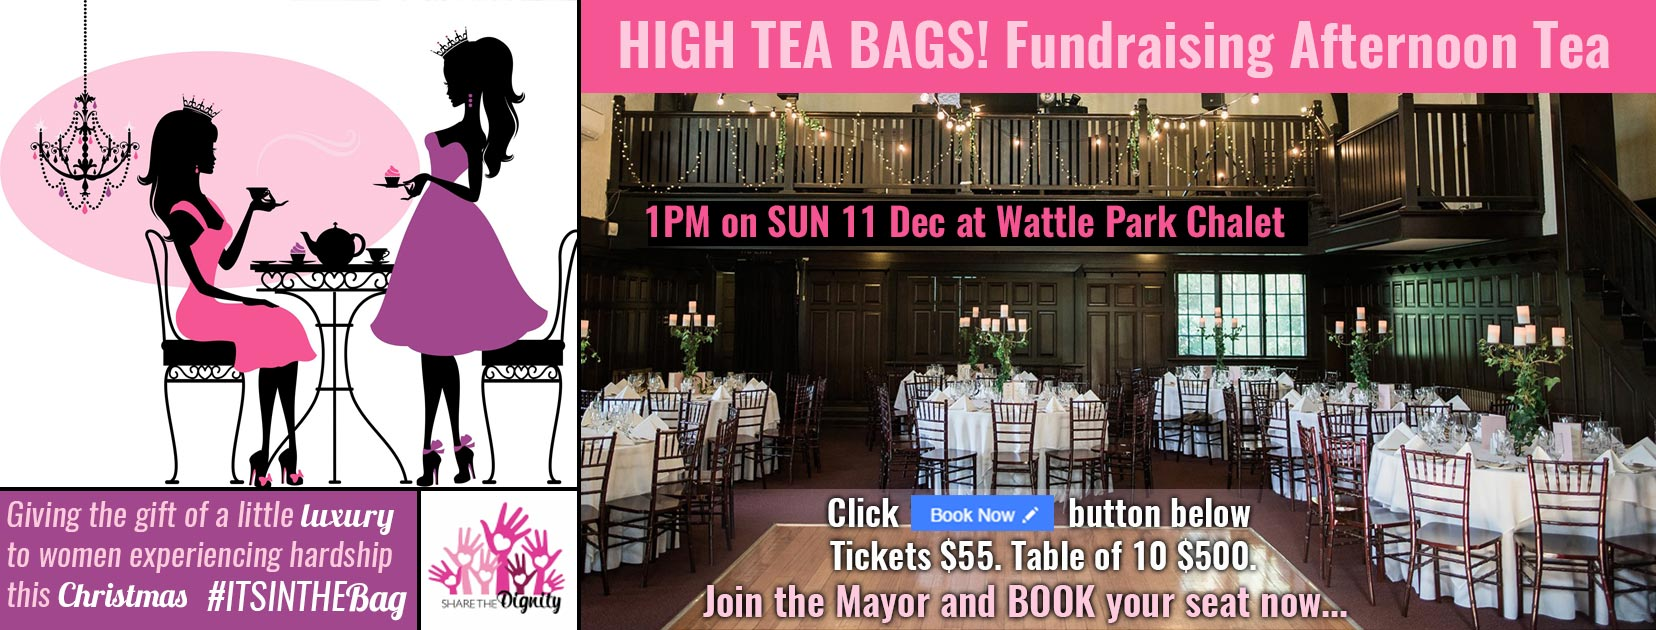 High Tea Bags Event details